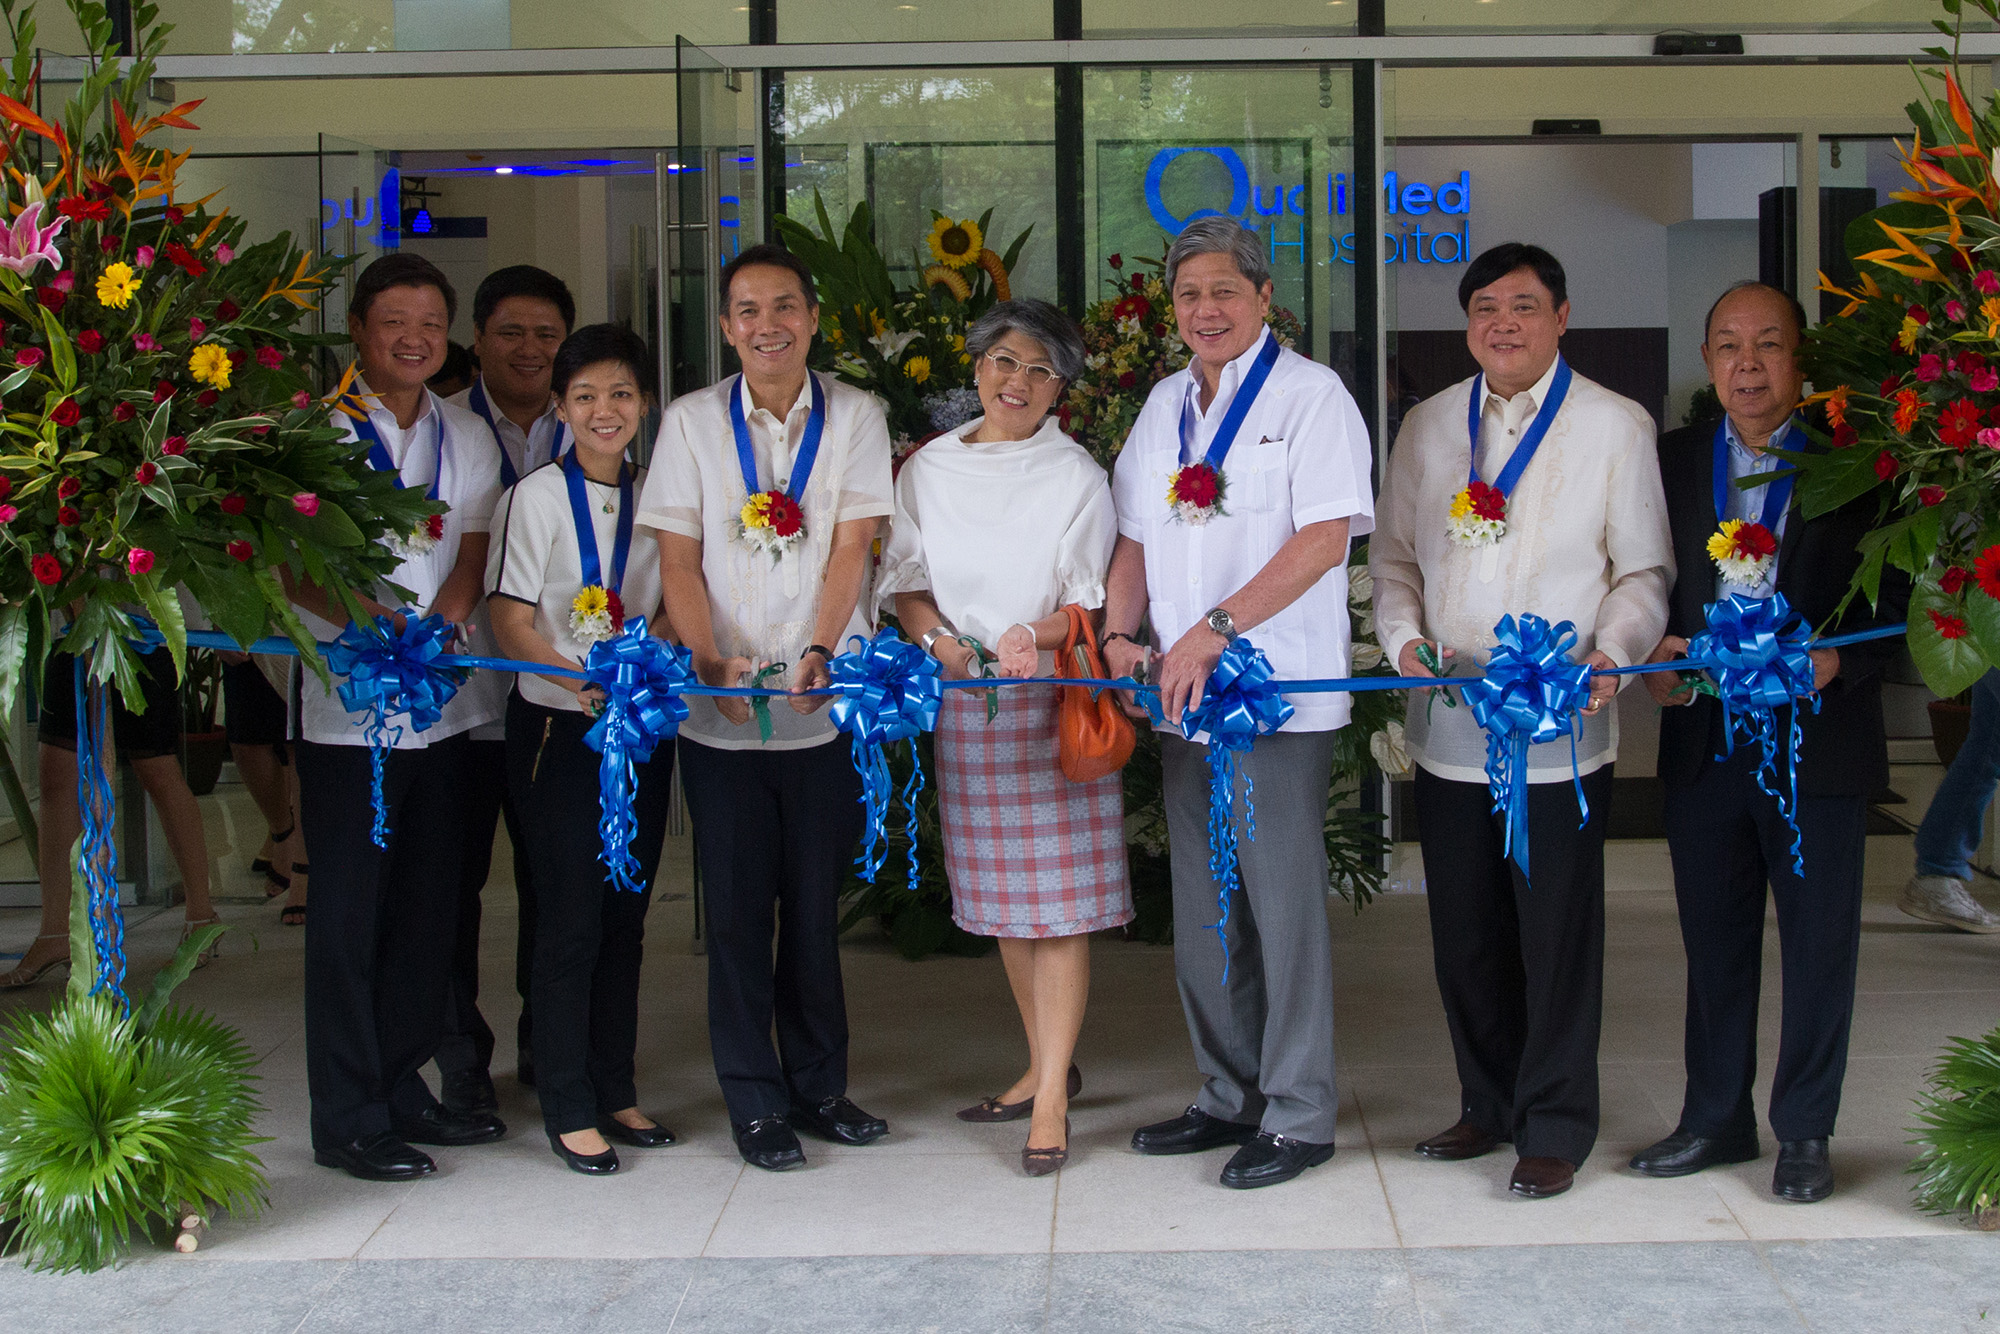 QualiMed Opens 105-Bed General Hospital at Altaraza Town Center in Bulacan